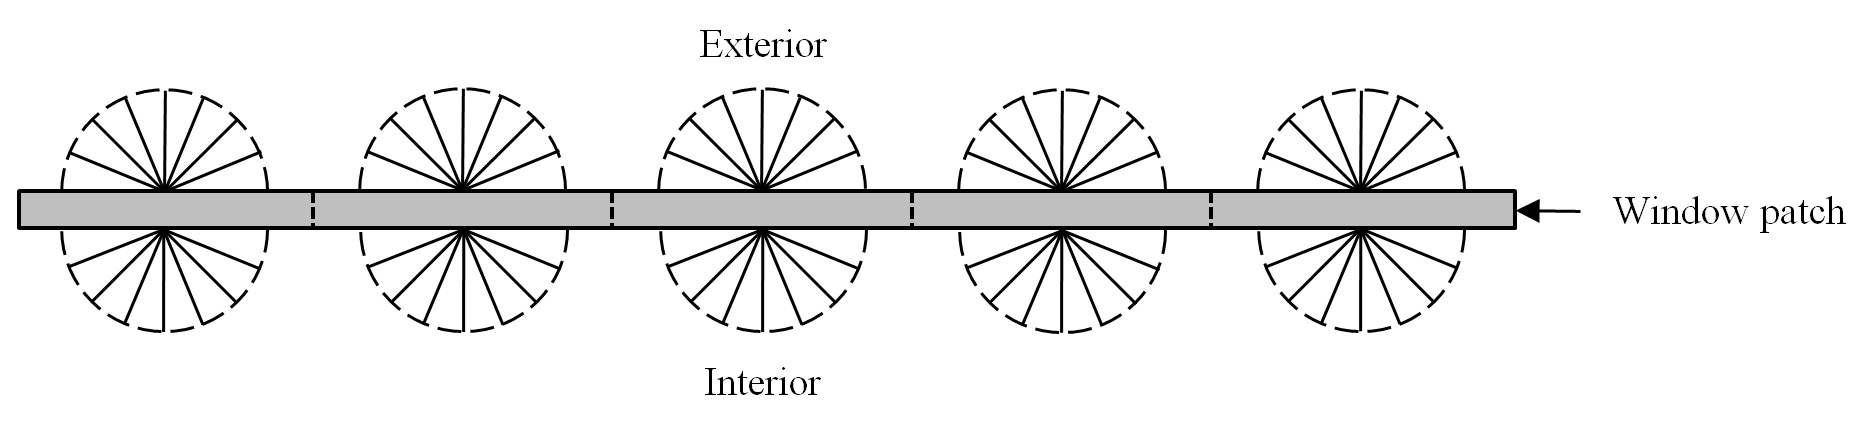 FIG. 19 – Virtual cameras positioned on multiple window patches.